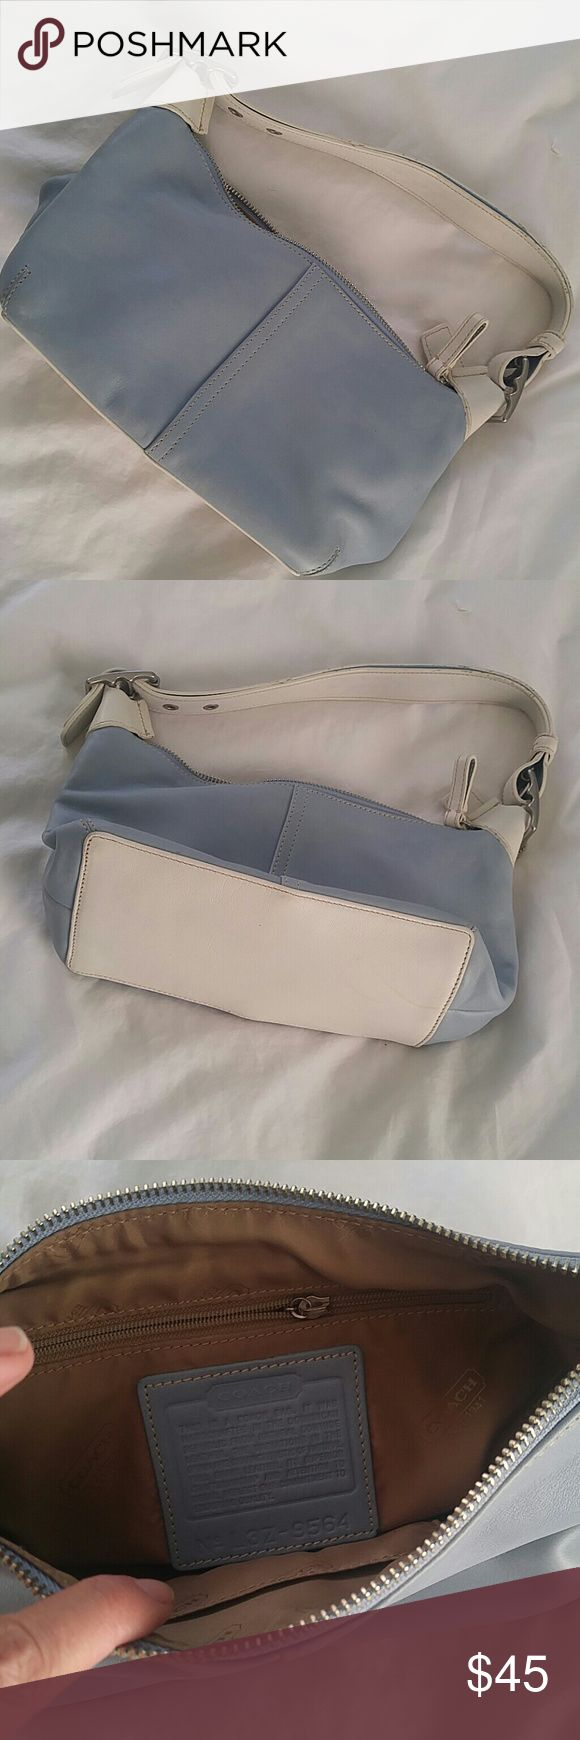 Coach blue and white hobo shoulder bag Beautiful barely used powder blue and cream white shoulder bag Coach Bags Hobos